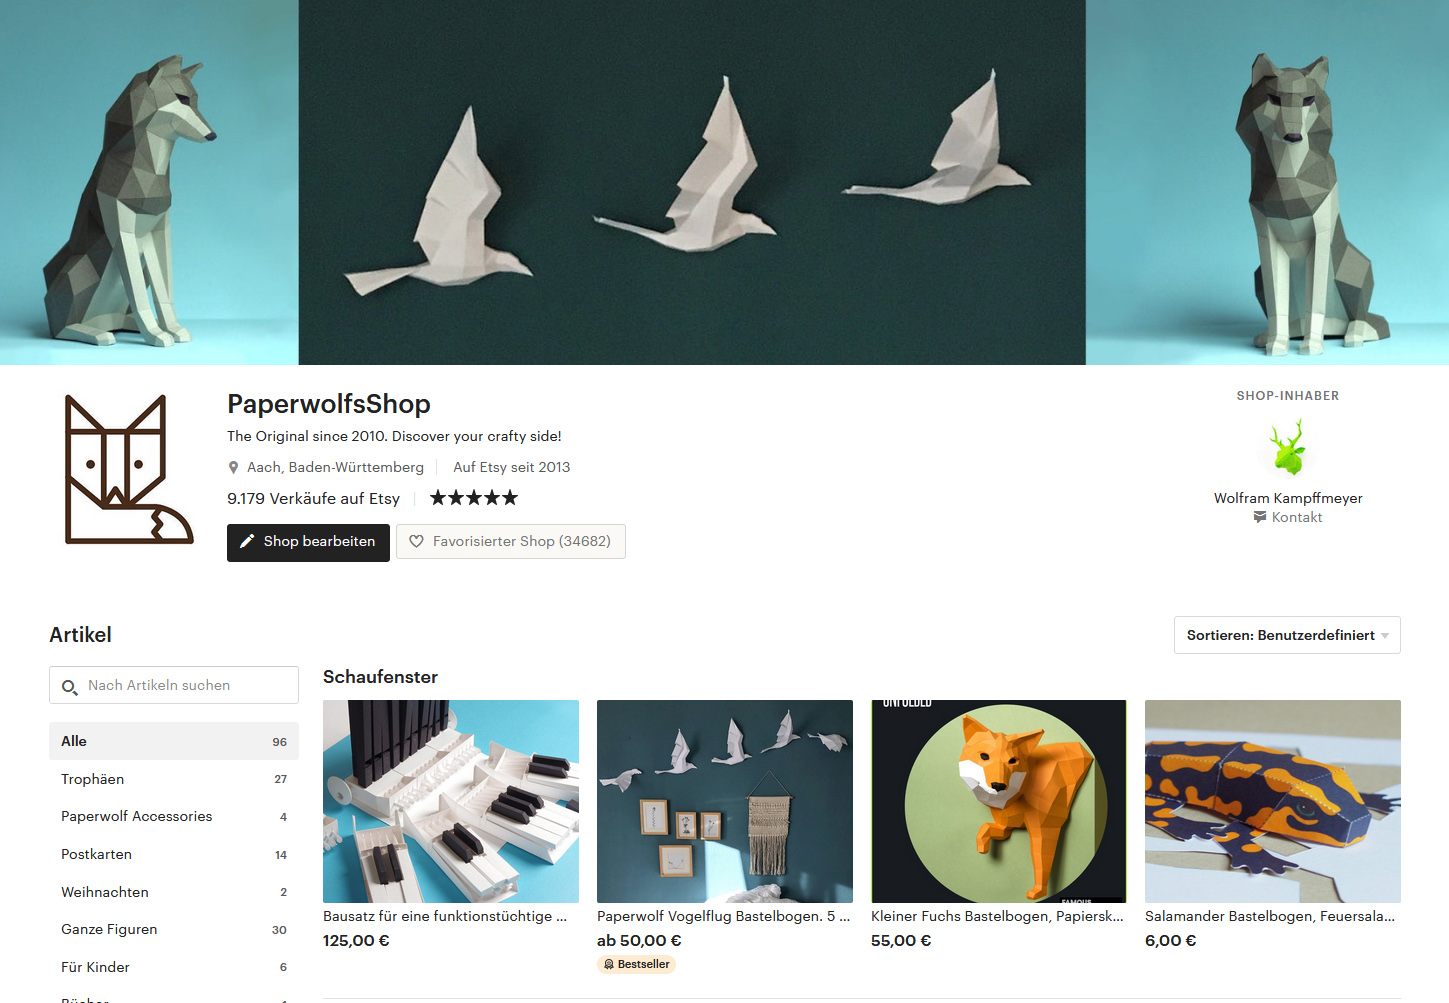 Paperwolf's Shop on Etsy